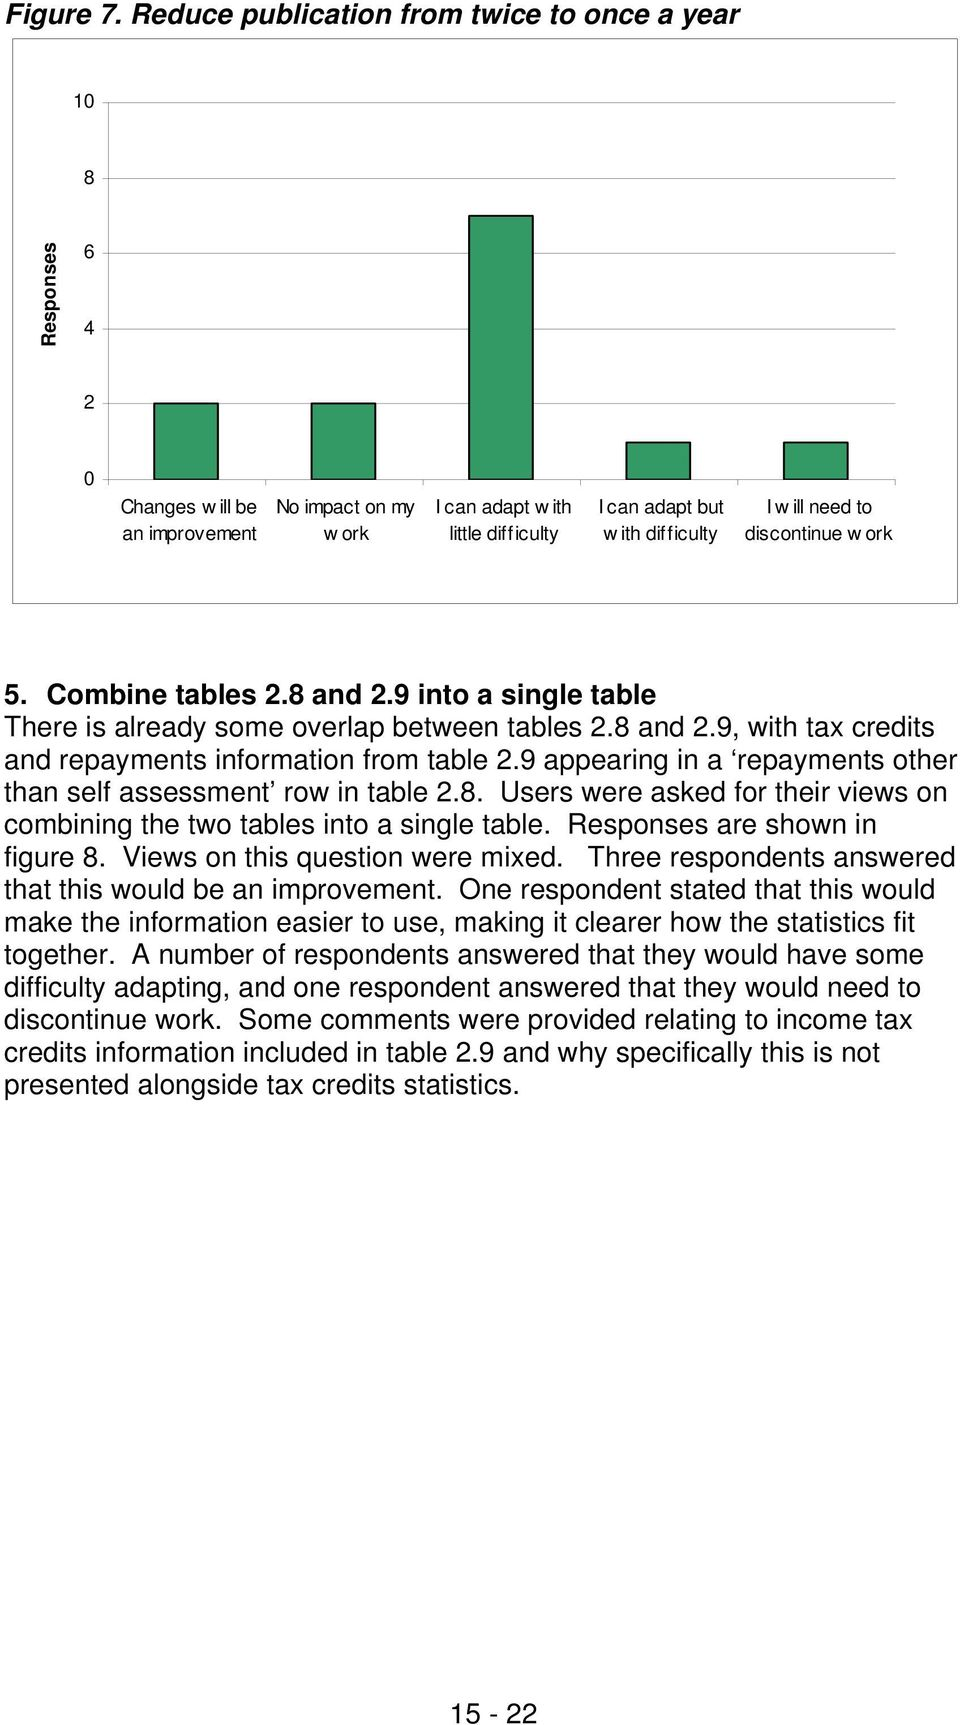 need to discontinue w ork 5. Combine tables 2.8 and 2.9 into a single table There is already some overlap between tables 2.8 and 2.9, with tax credits and repayments information from table 2.